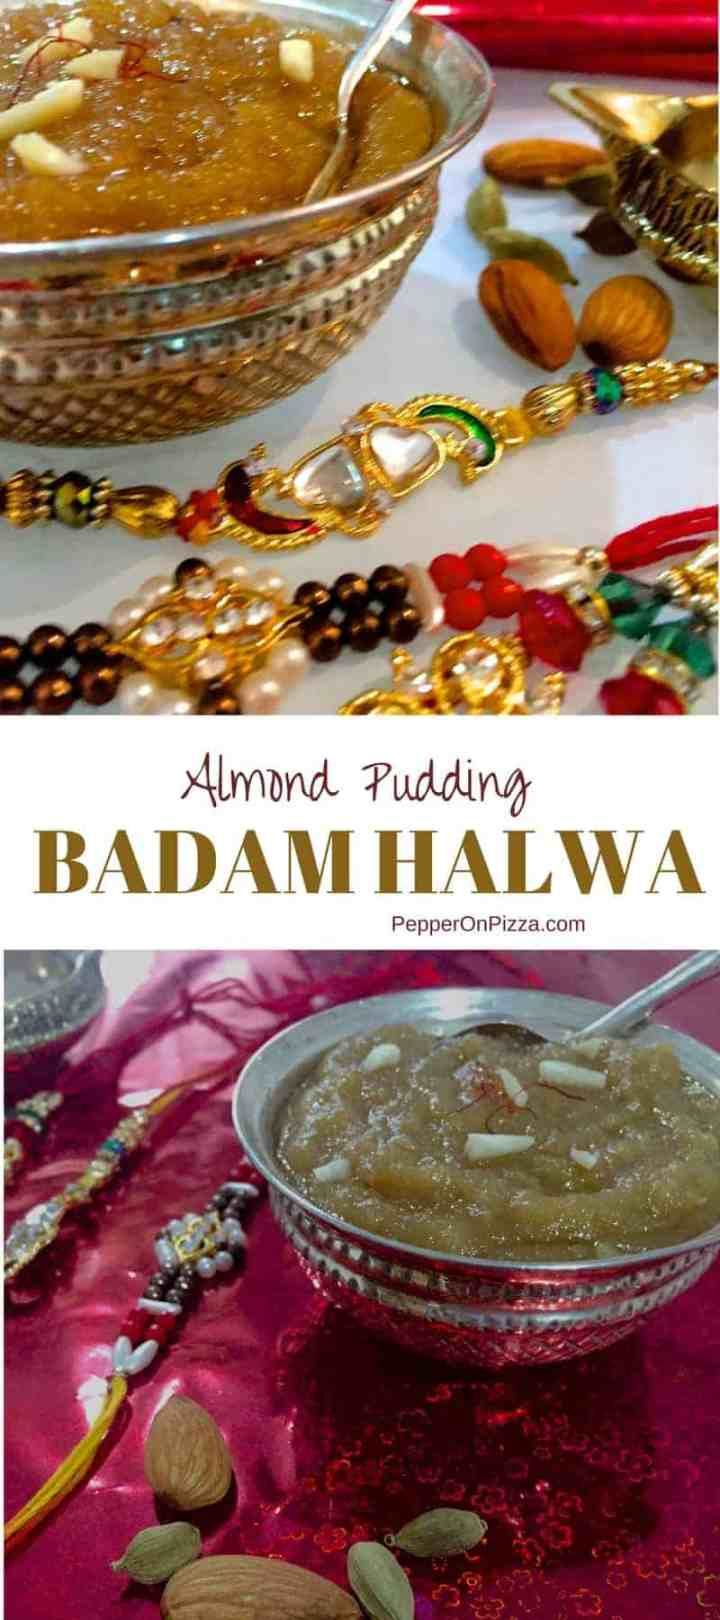 Ground almonds sautéed in ghee, sugar and milk and flavoured with saffron and cardamom - this Badam Halwa is a rich and tasty dessert